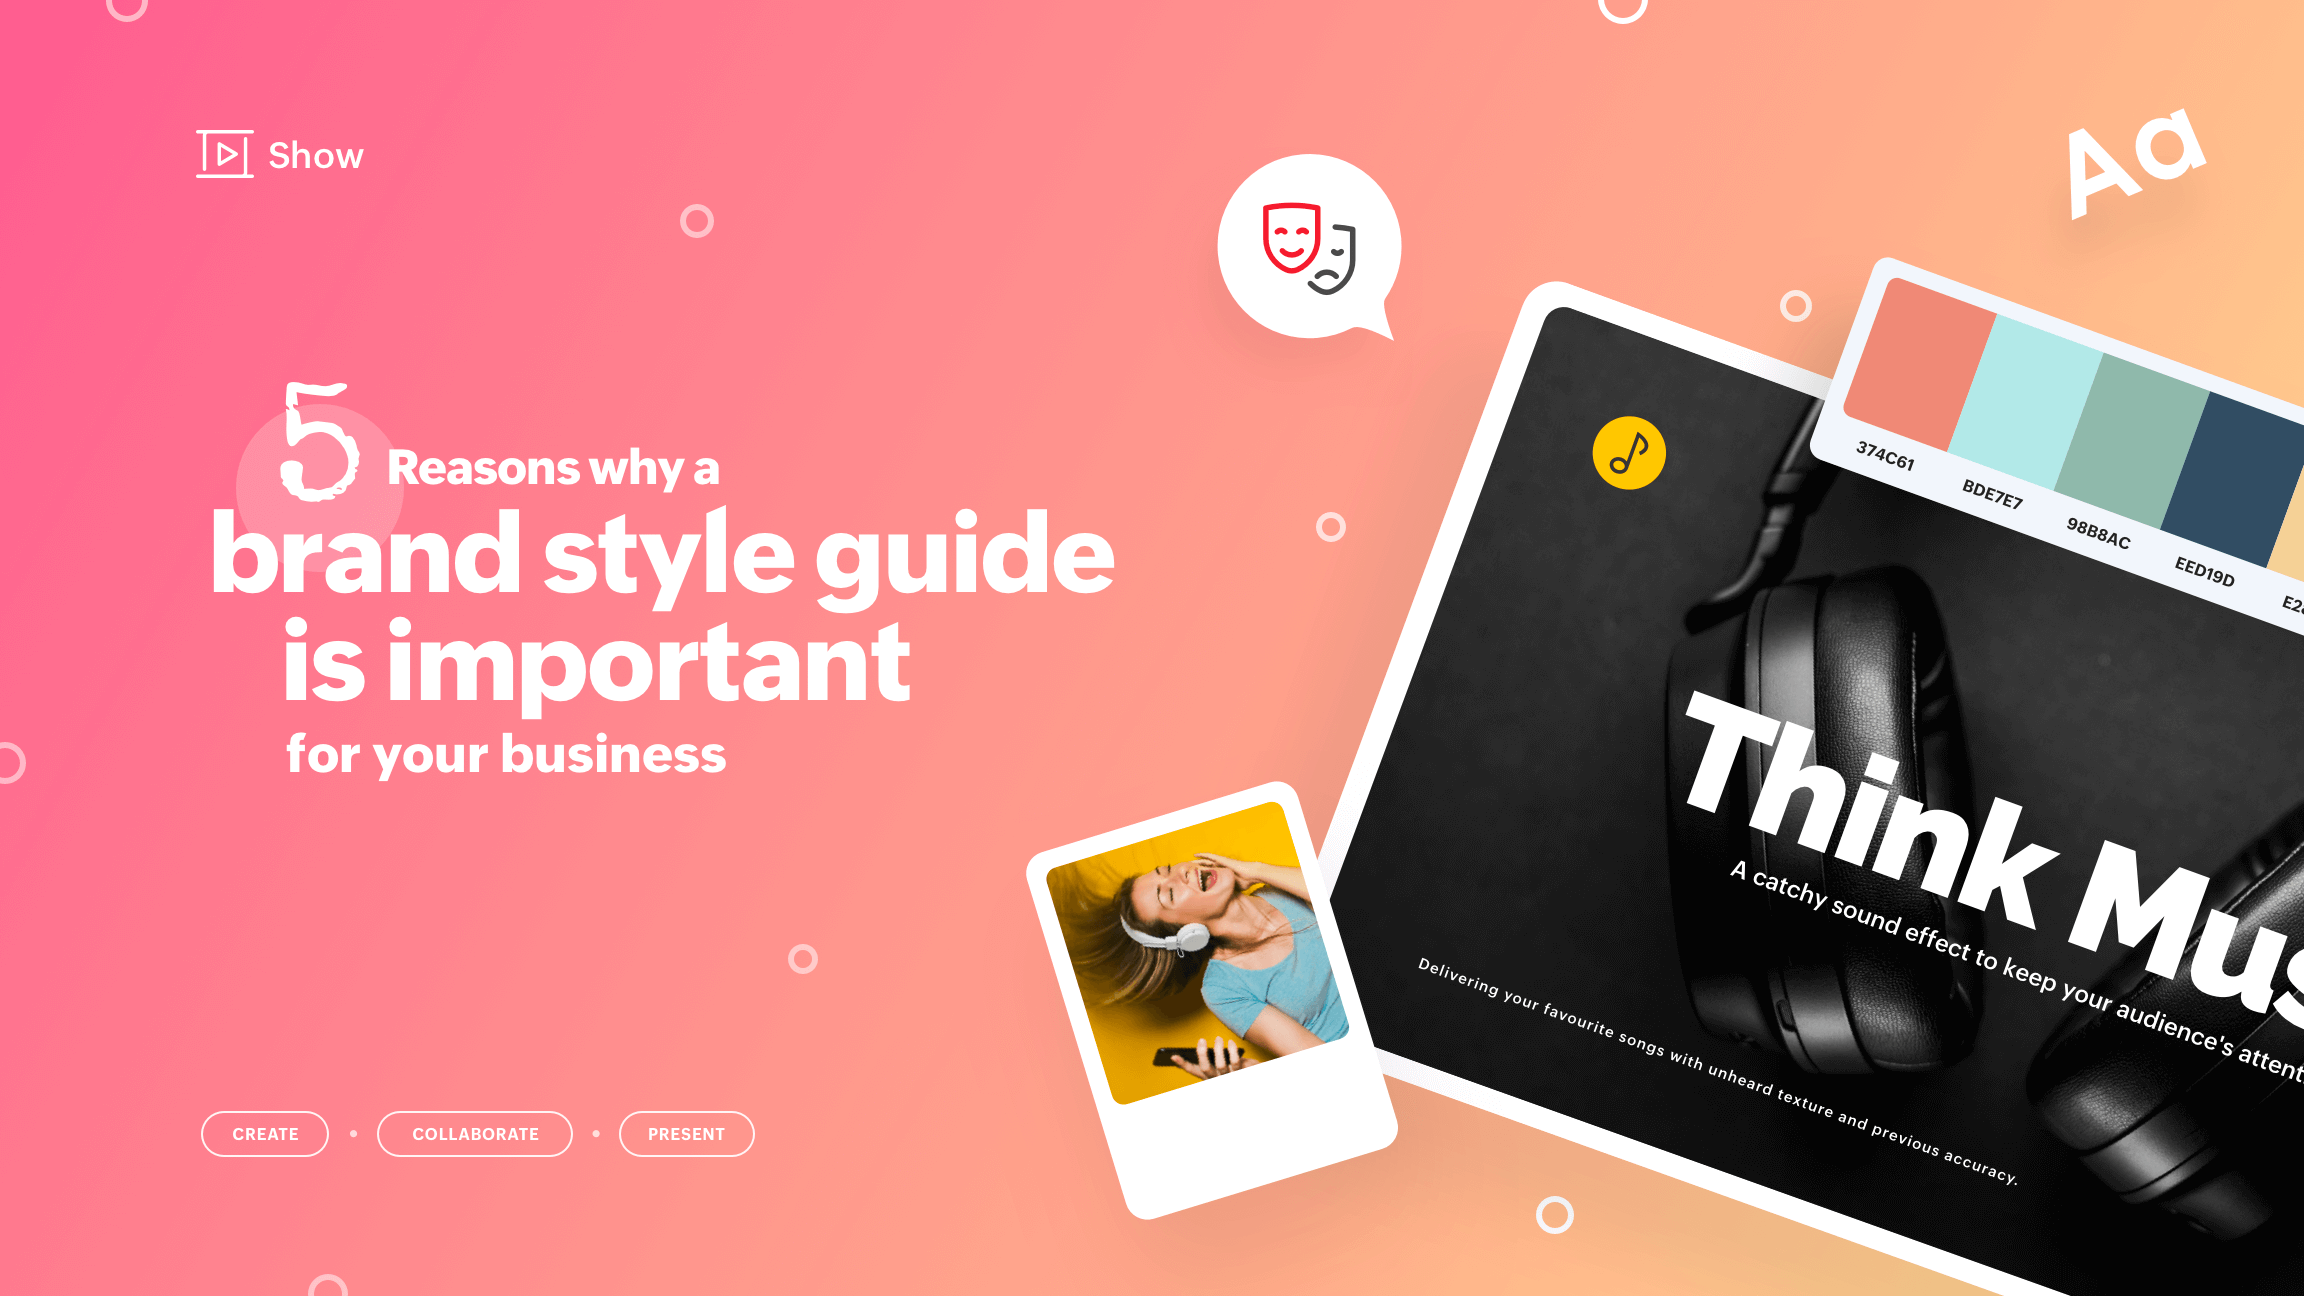 5 reasons why a brand style guide is important for your business